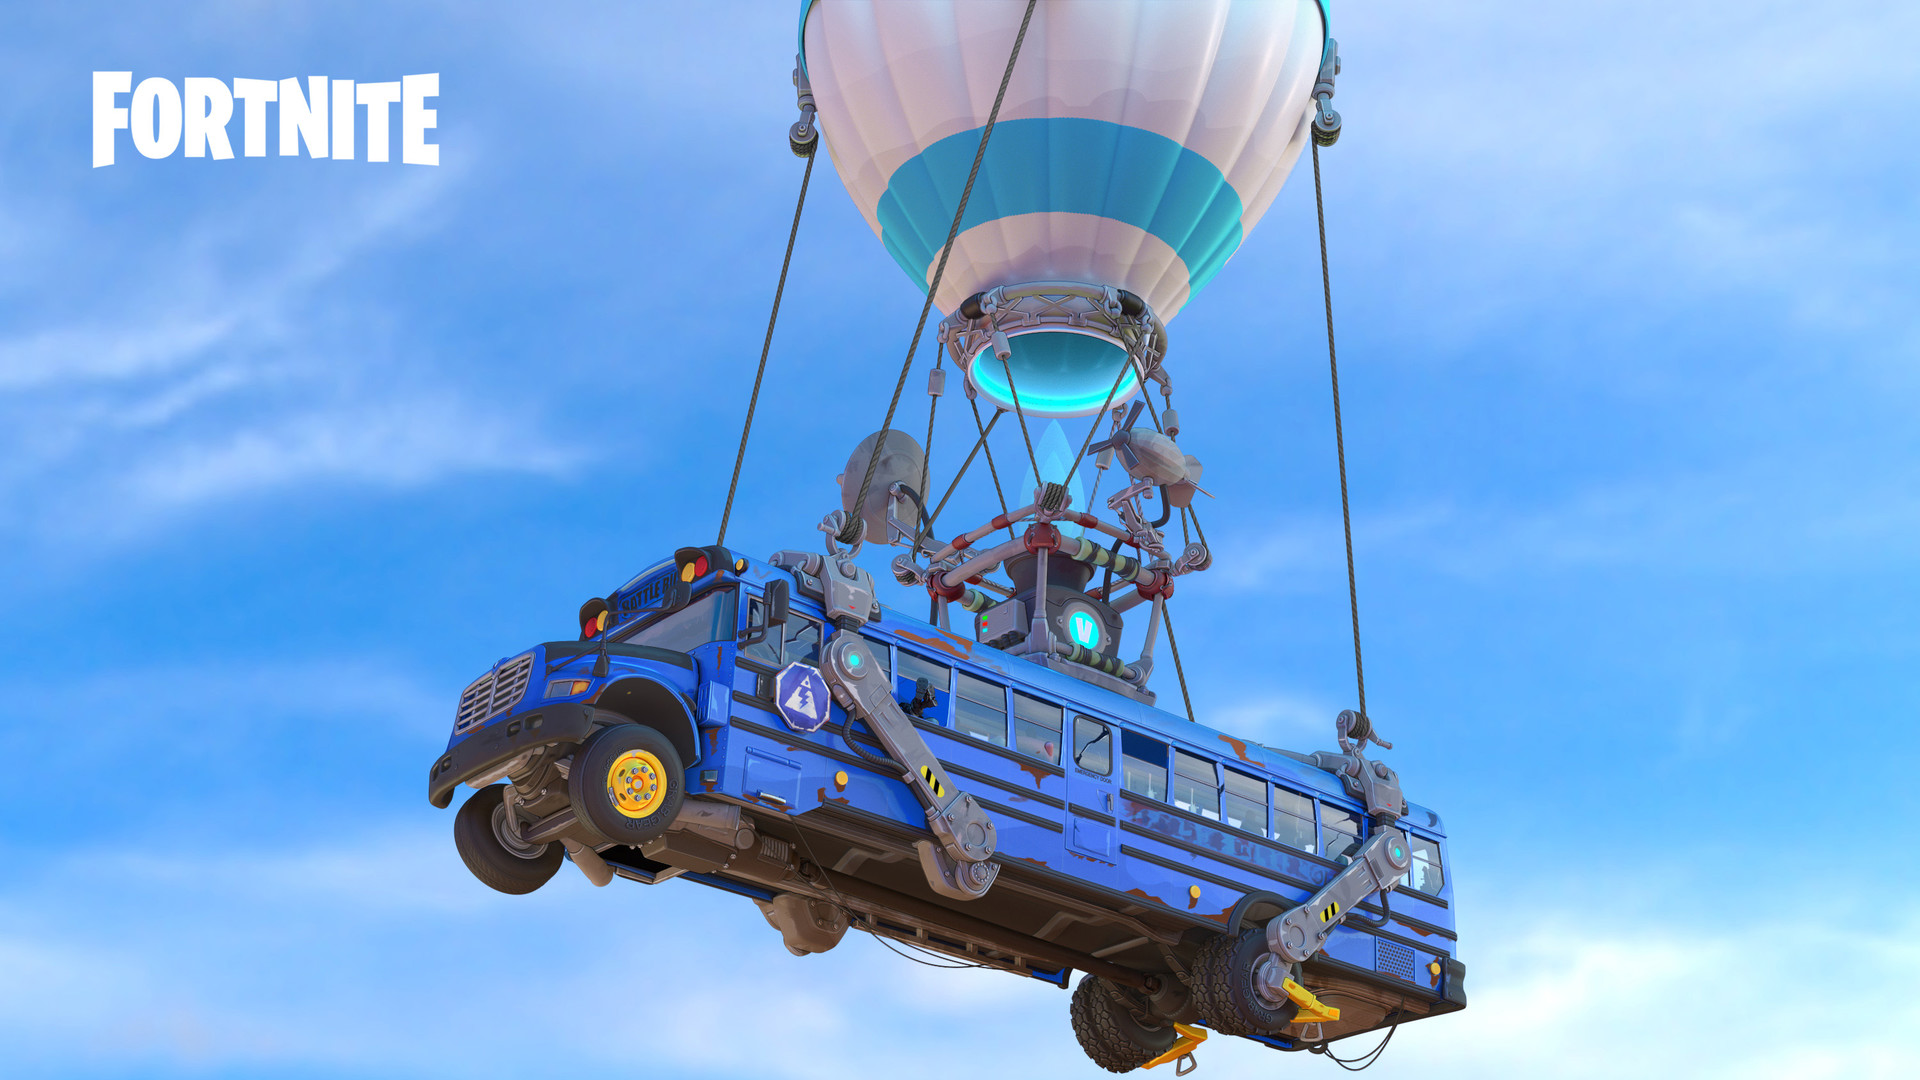 The Battle Bus - Square 1